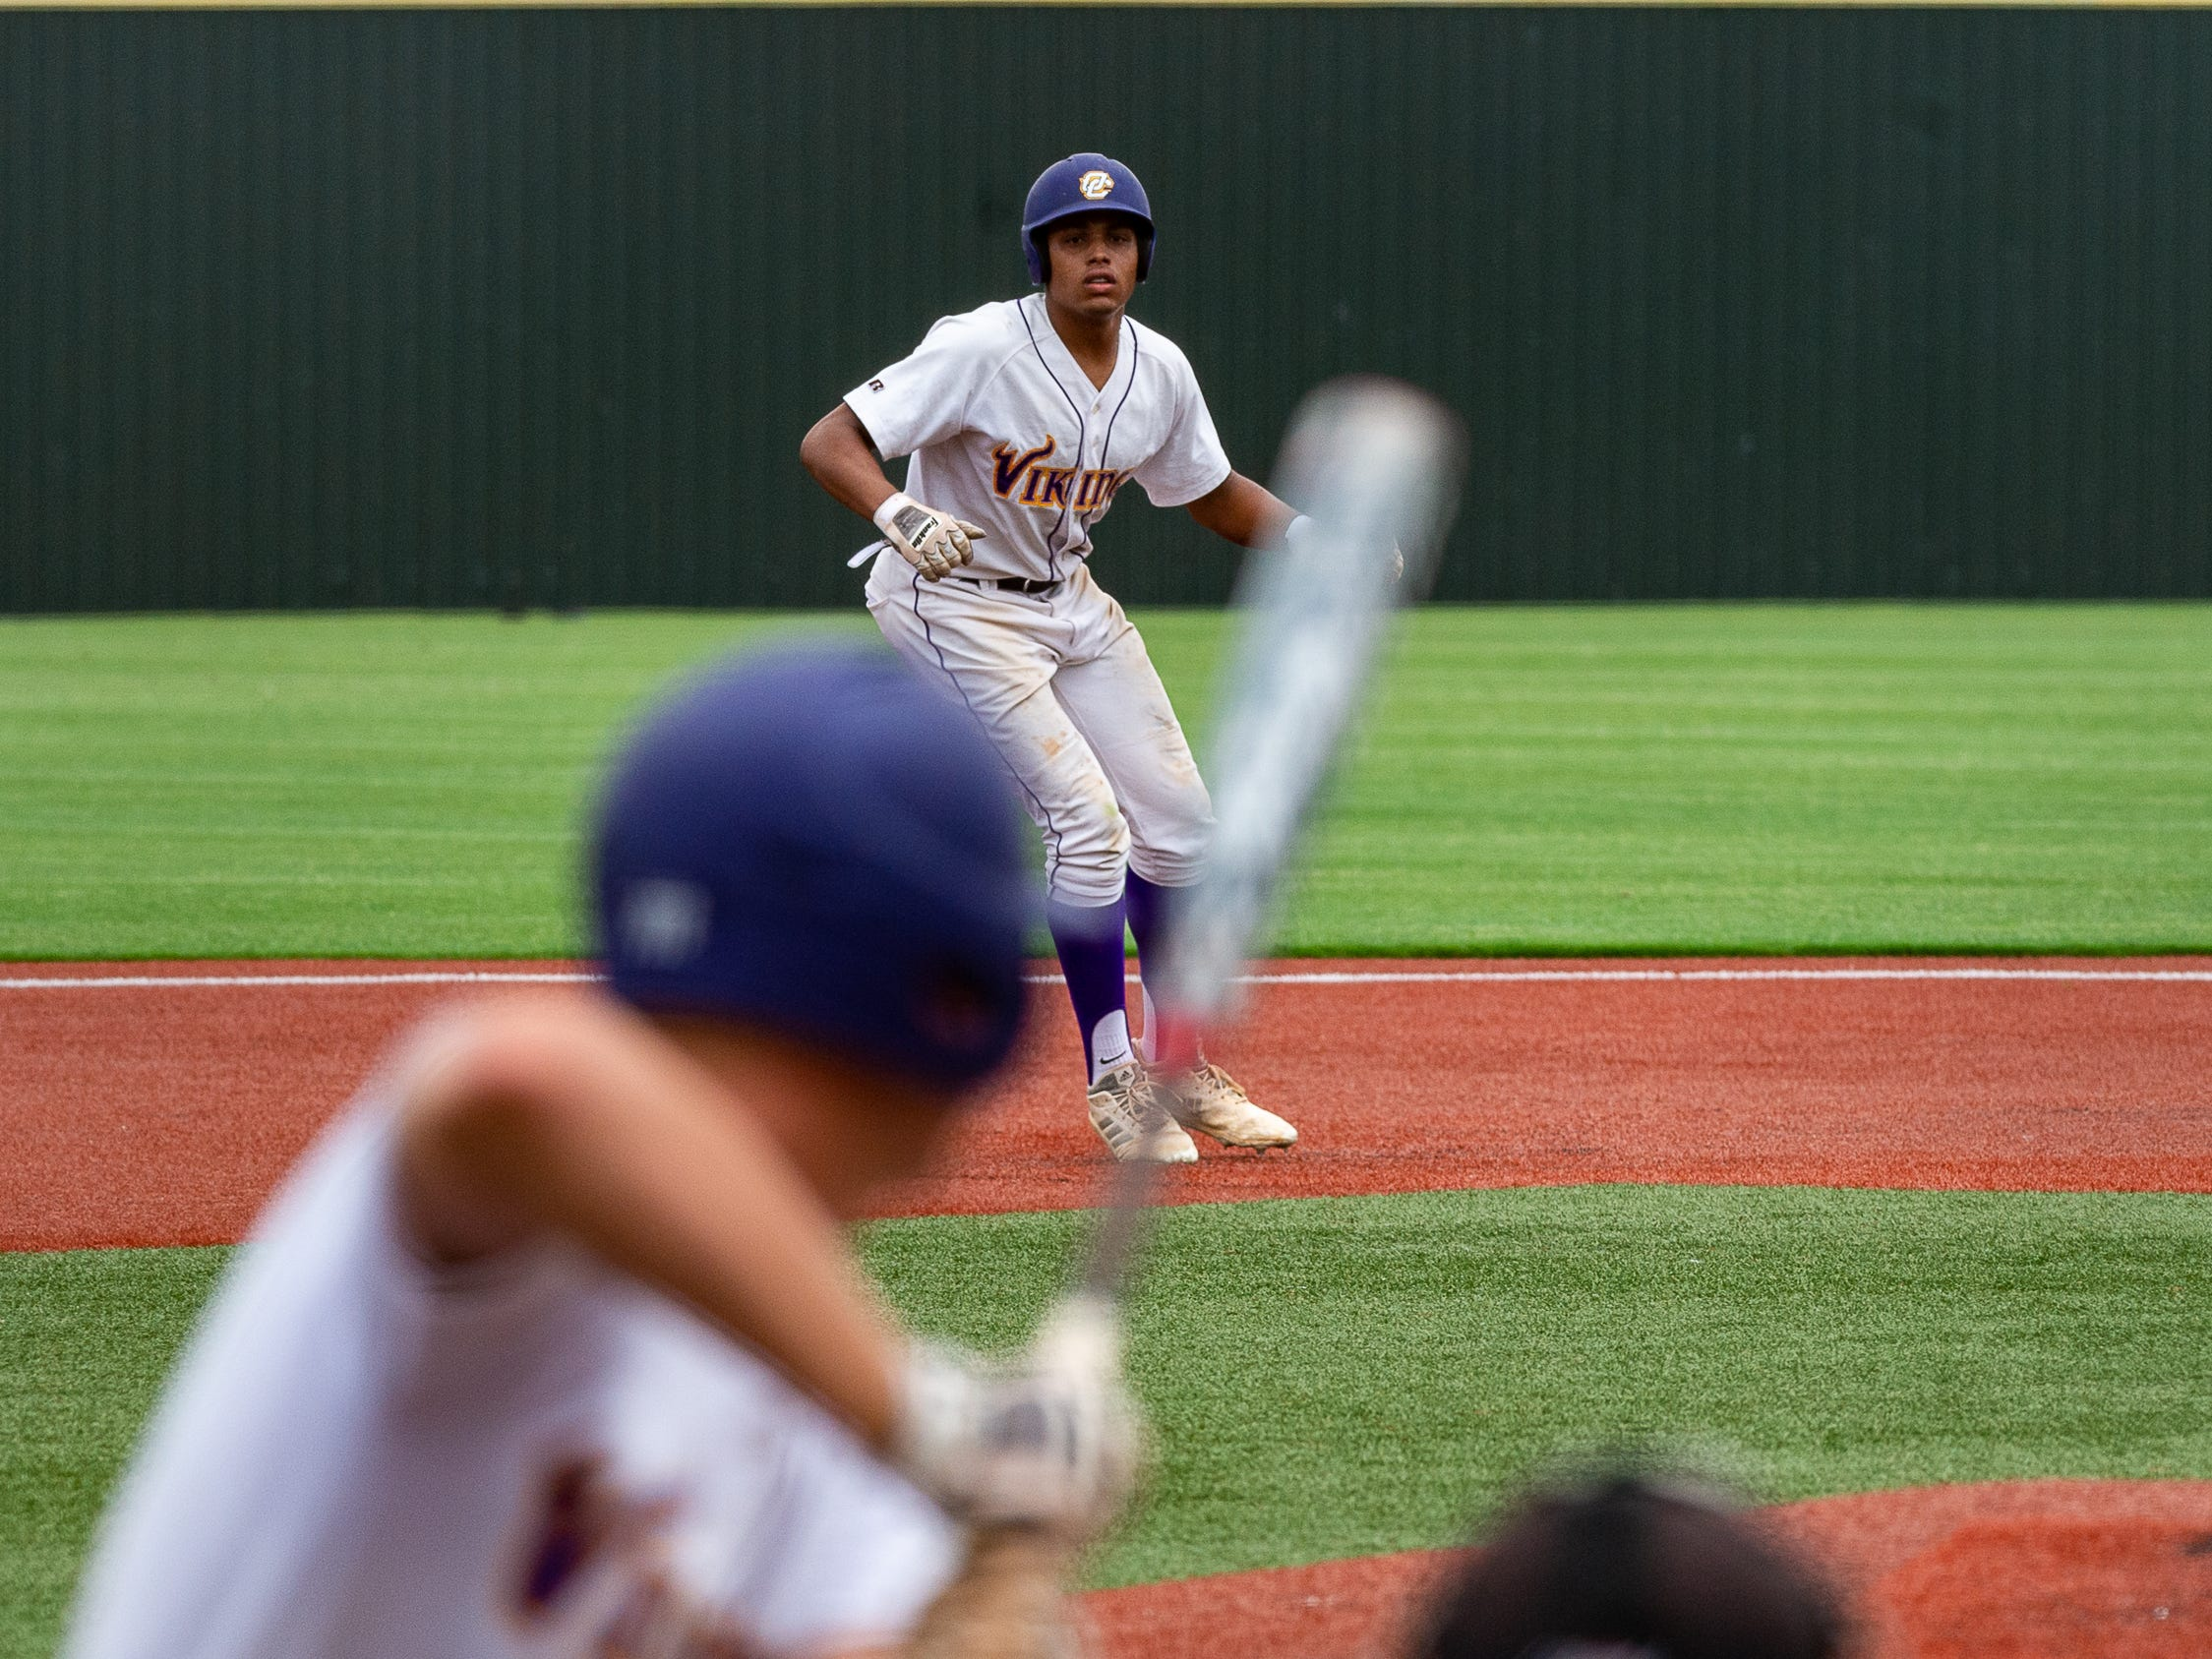 Outfielder Devin Thierry takes a lead from second as  Opelousas Catholic takes on Ascension Catholic in the Div IV Semi Final game of the LHSAA State Baseball Championship. Wednesday, May 8, 2019.